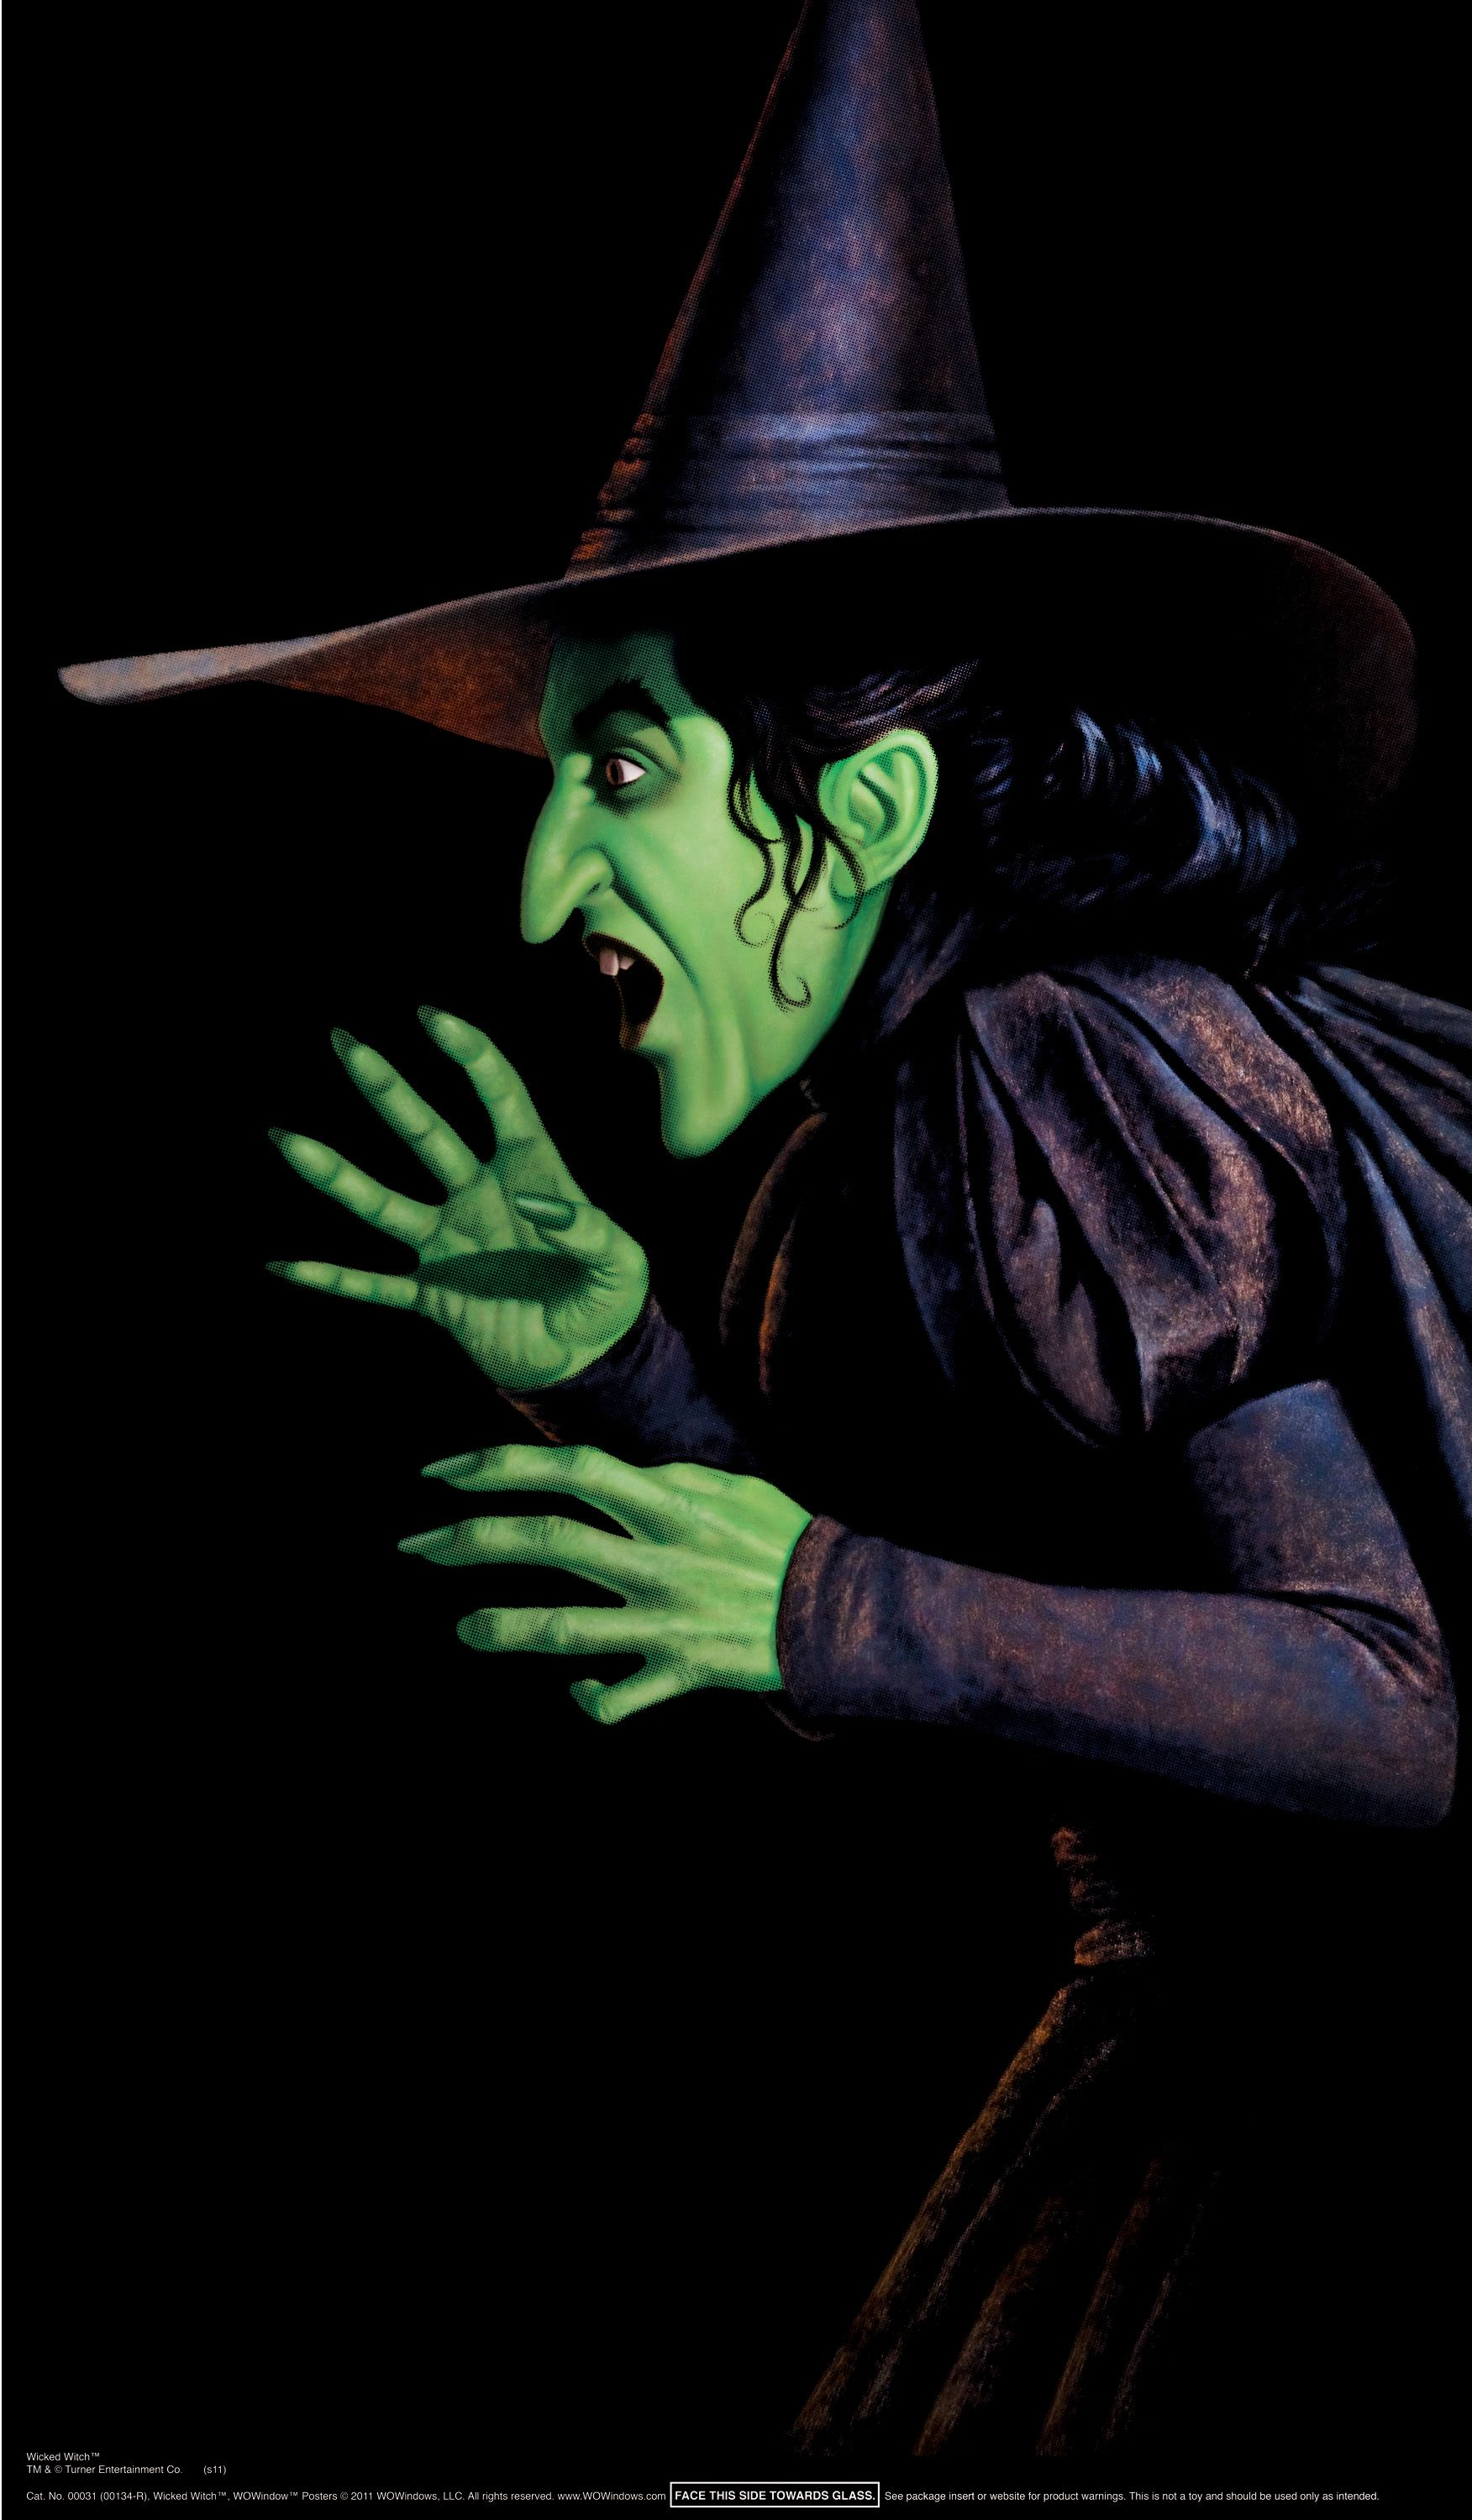 Wicked Witch of the West screenshots, images and pictures - Comic Vine Wicked witch of the west pictures from wizard of oz